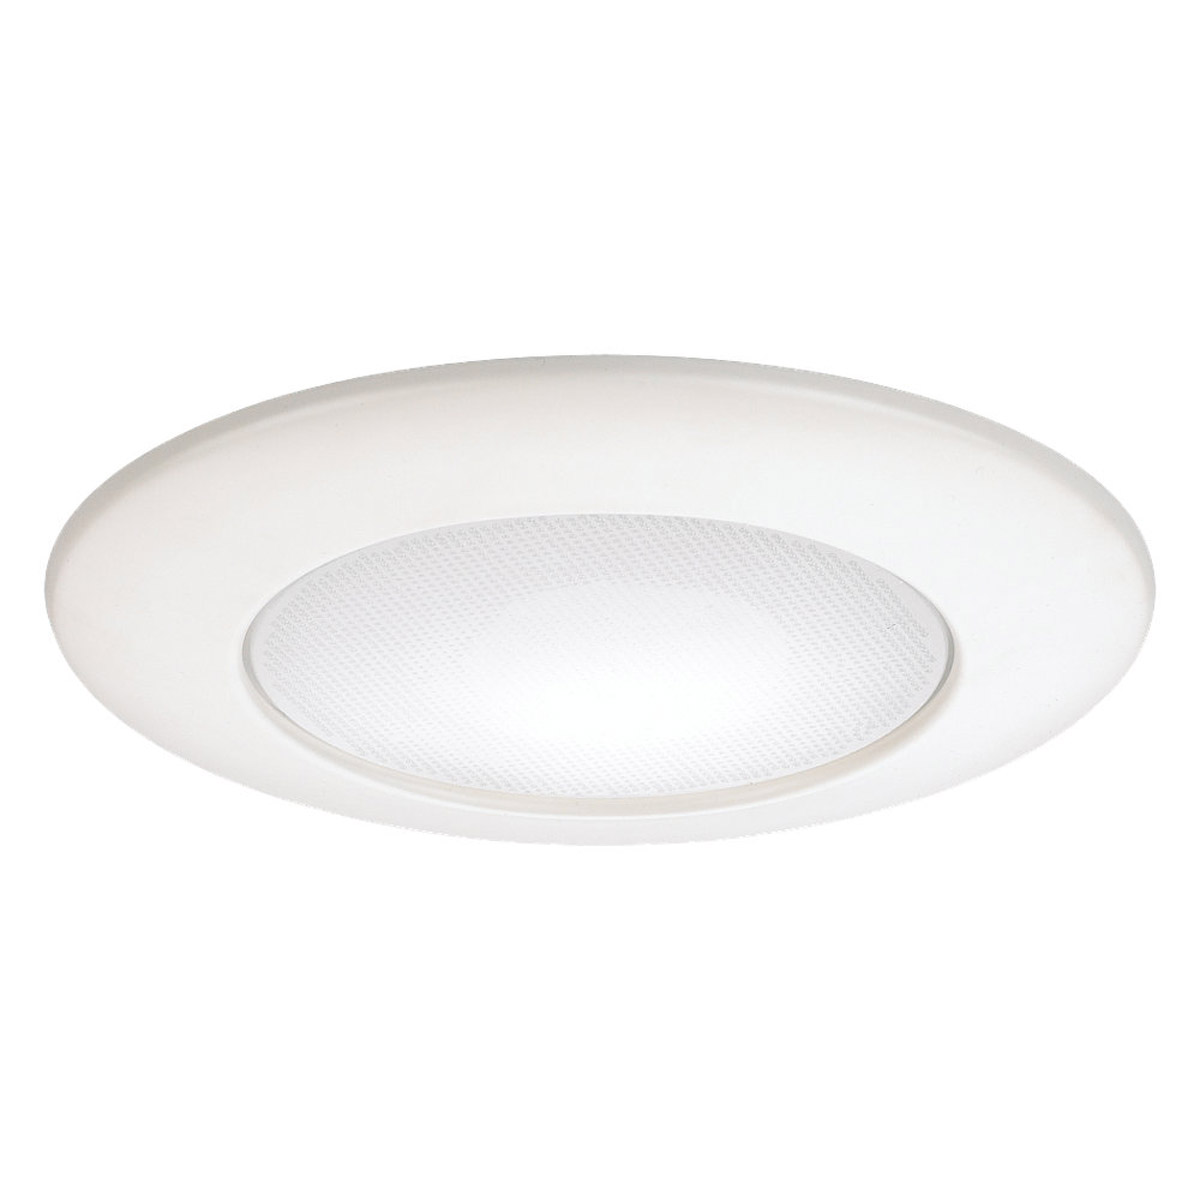 Sea Gull Lighting Signature Recessed Trim Only in White 1135AT-15 photo